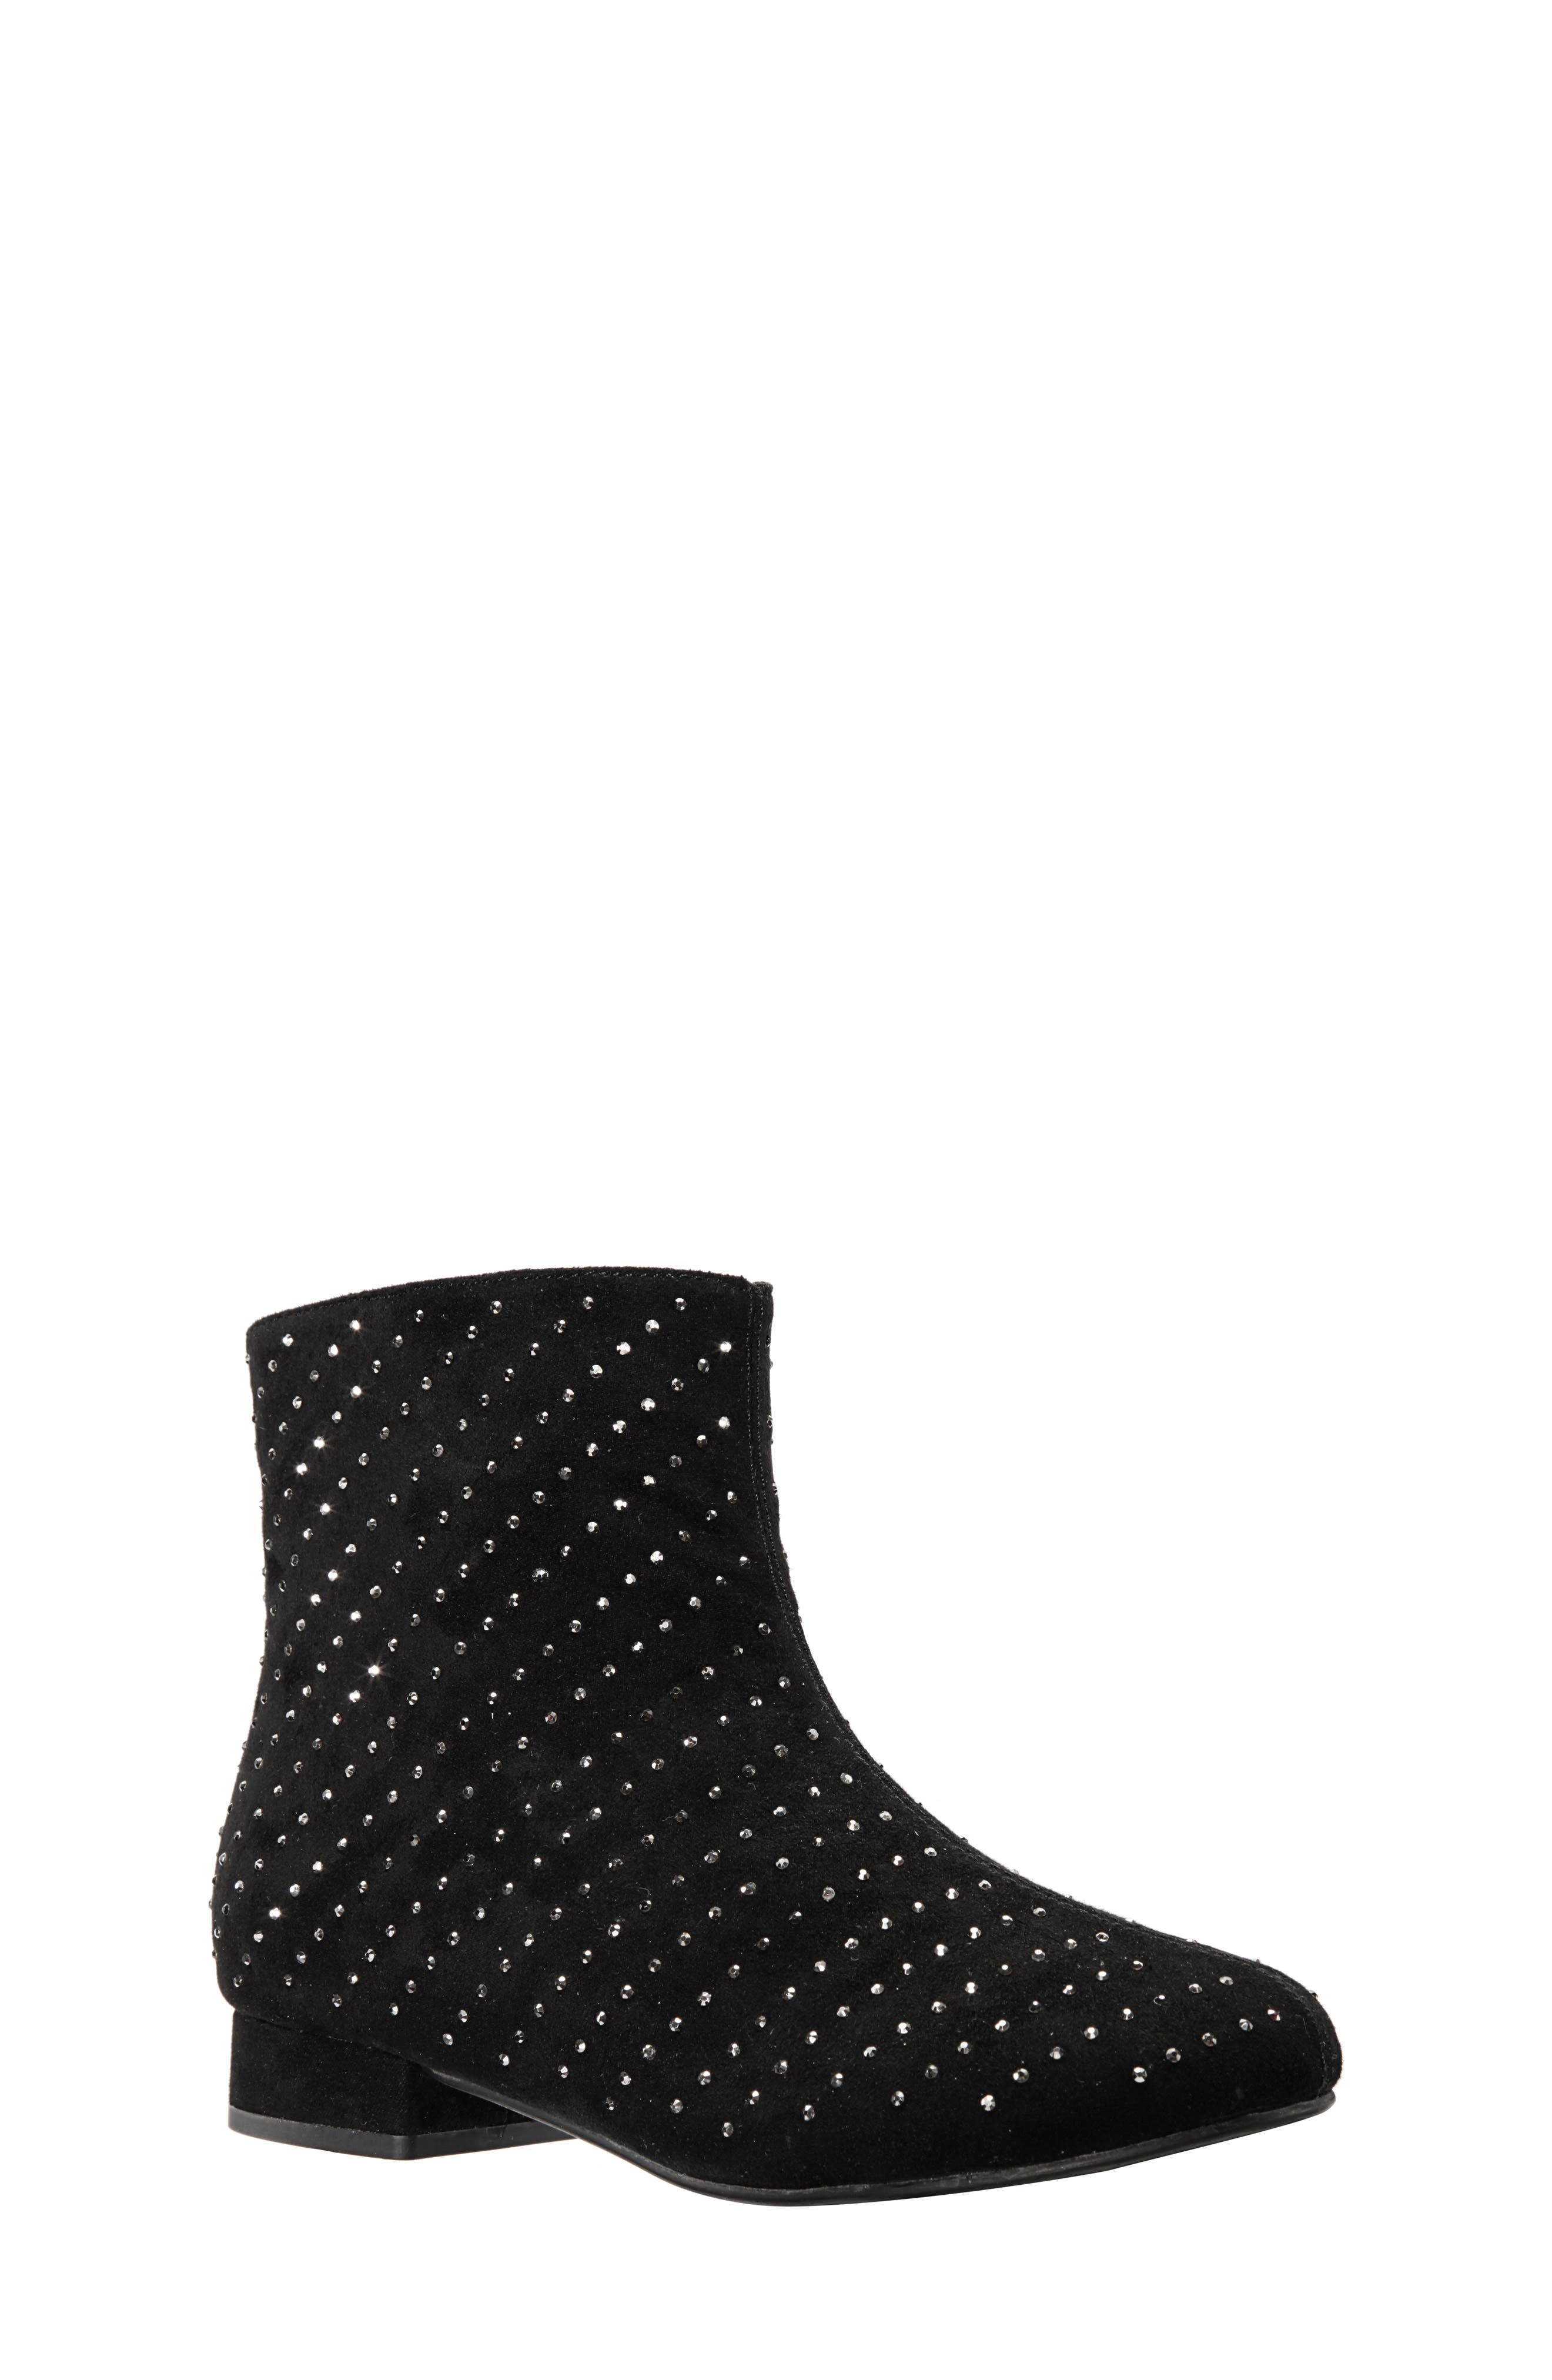 Peaches Studded Bootie,                             Main thumbnail 1, color,                             BLACK MICRO SUEDE